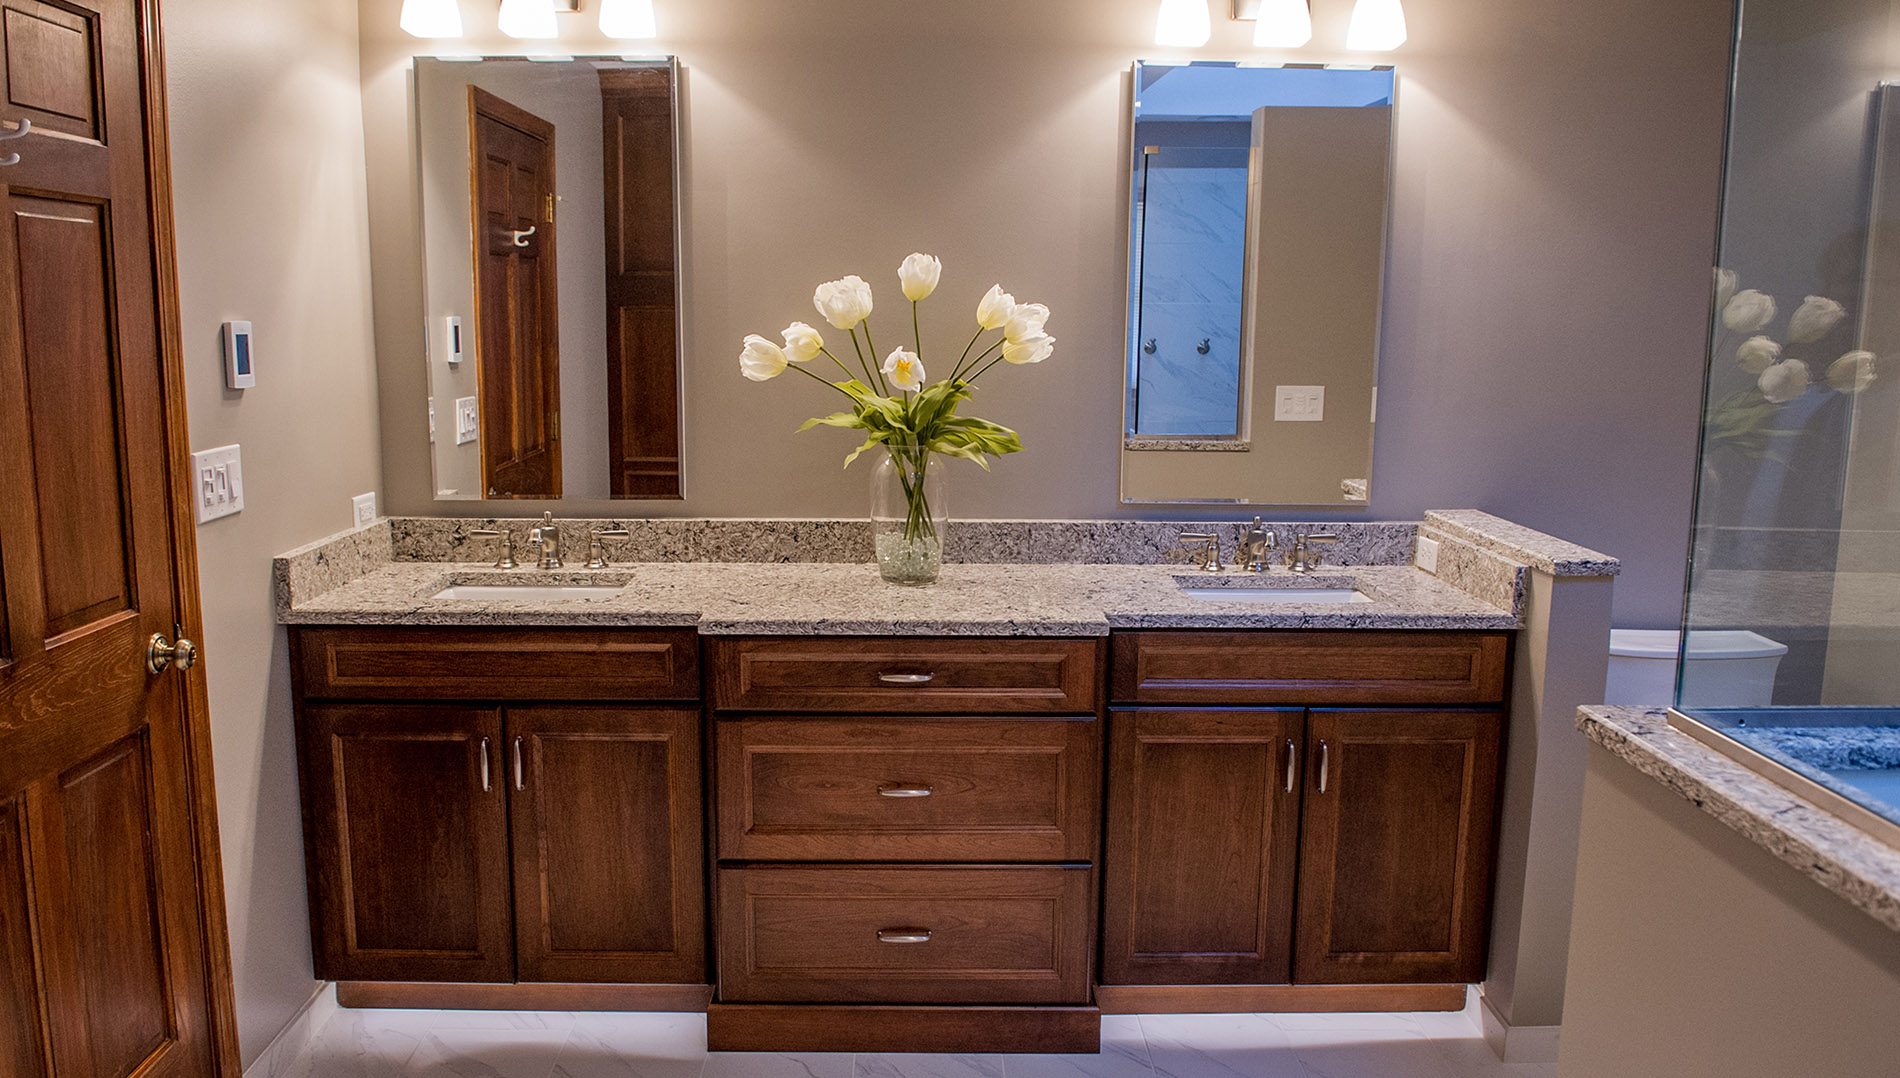 Custom Bathroom Vanities Naperville kitchen & bathroom design naperville, aurora, wheaton